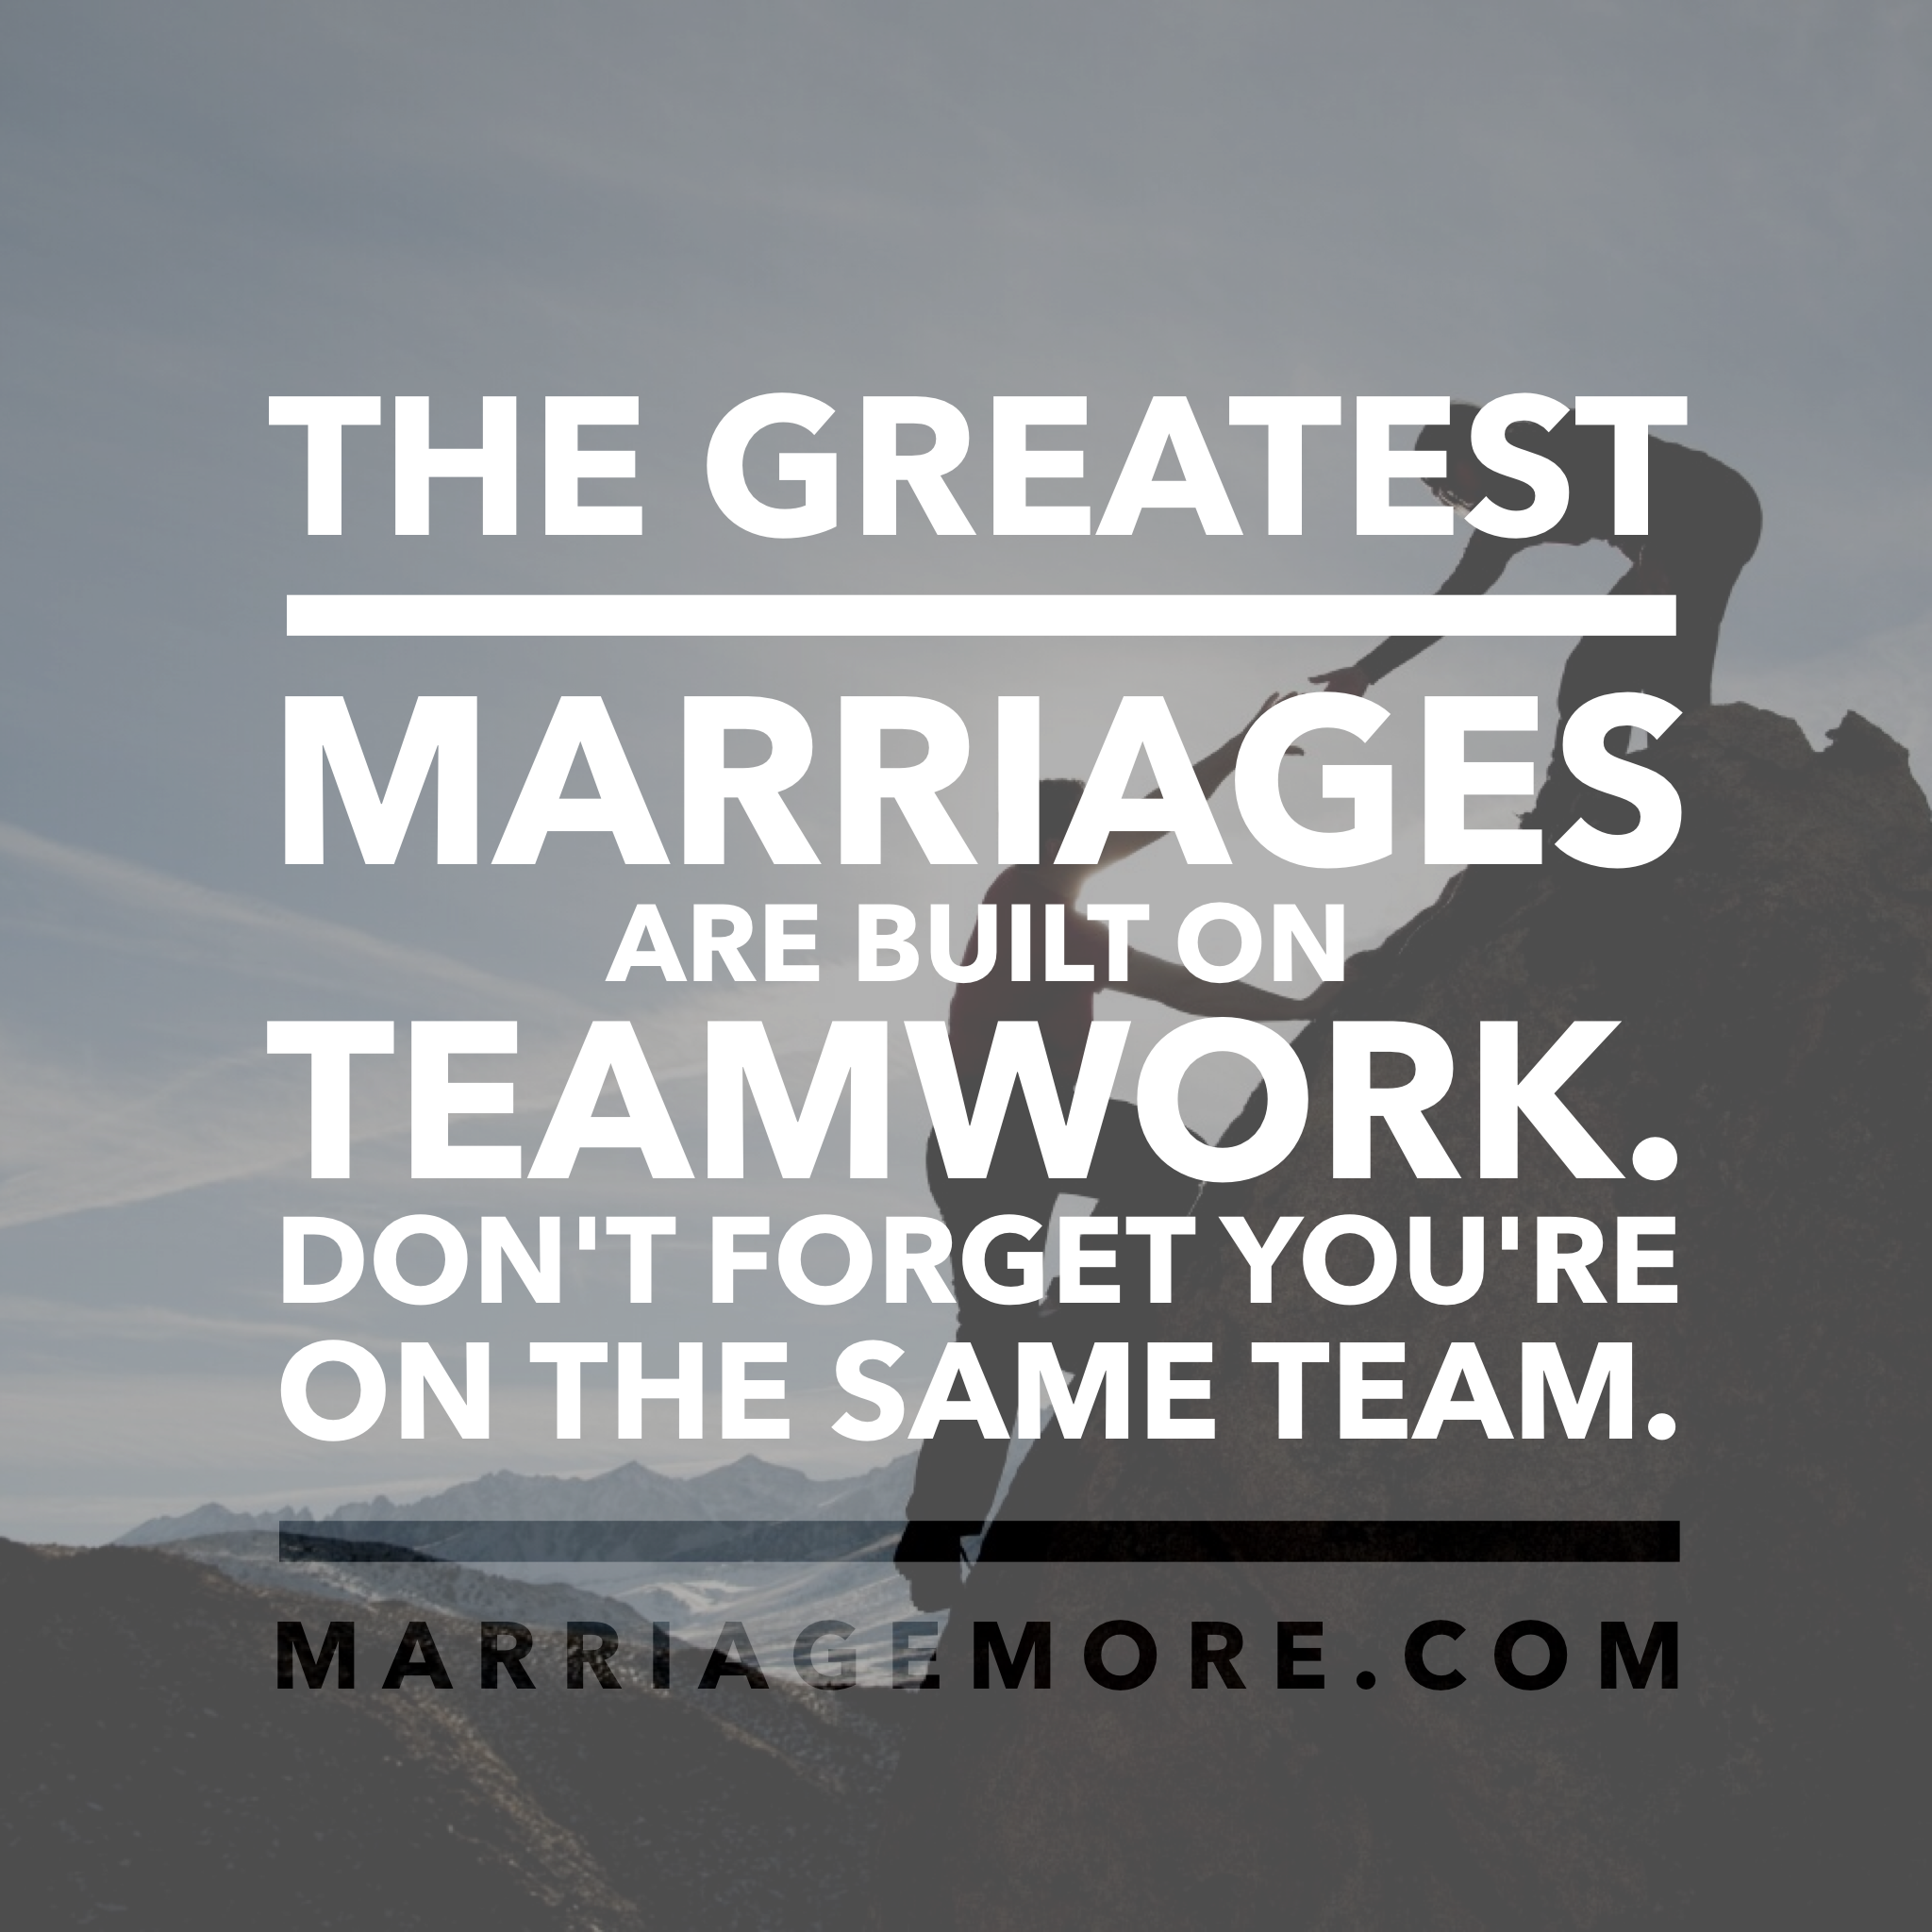 Marriage Quotes Marriage Is Teamwork Good Wife Quotes Teamwork Quotes Marriage Quotes